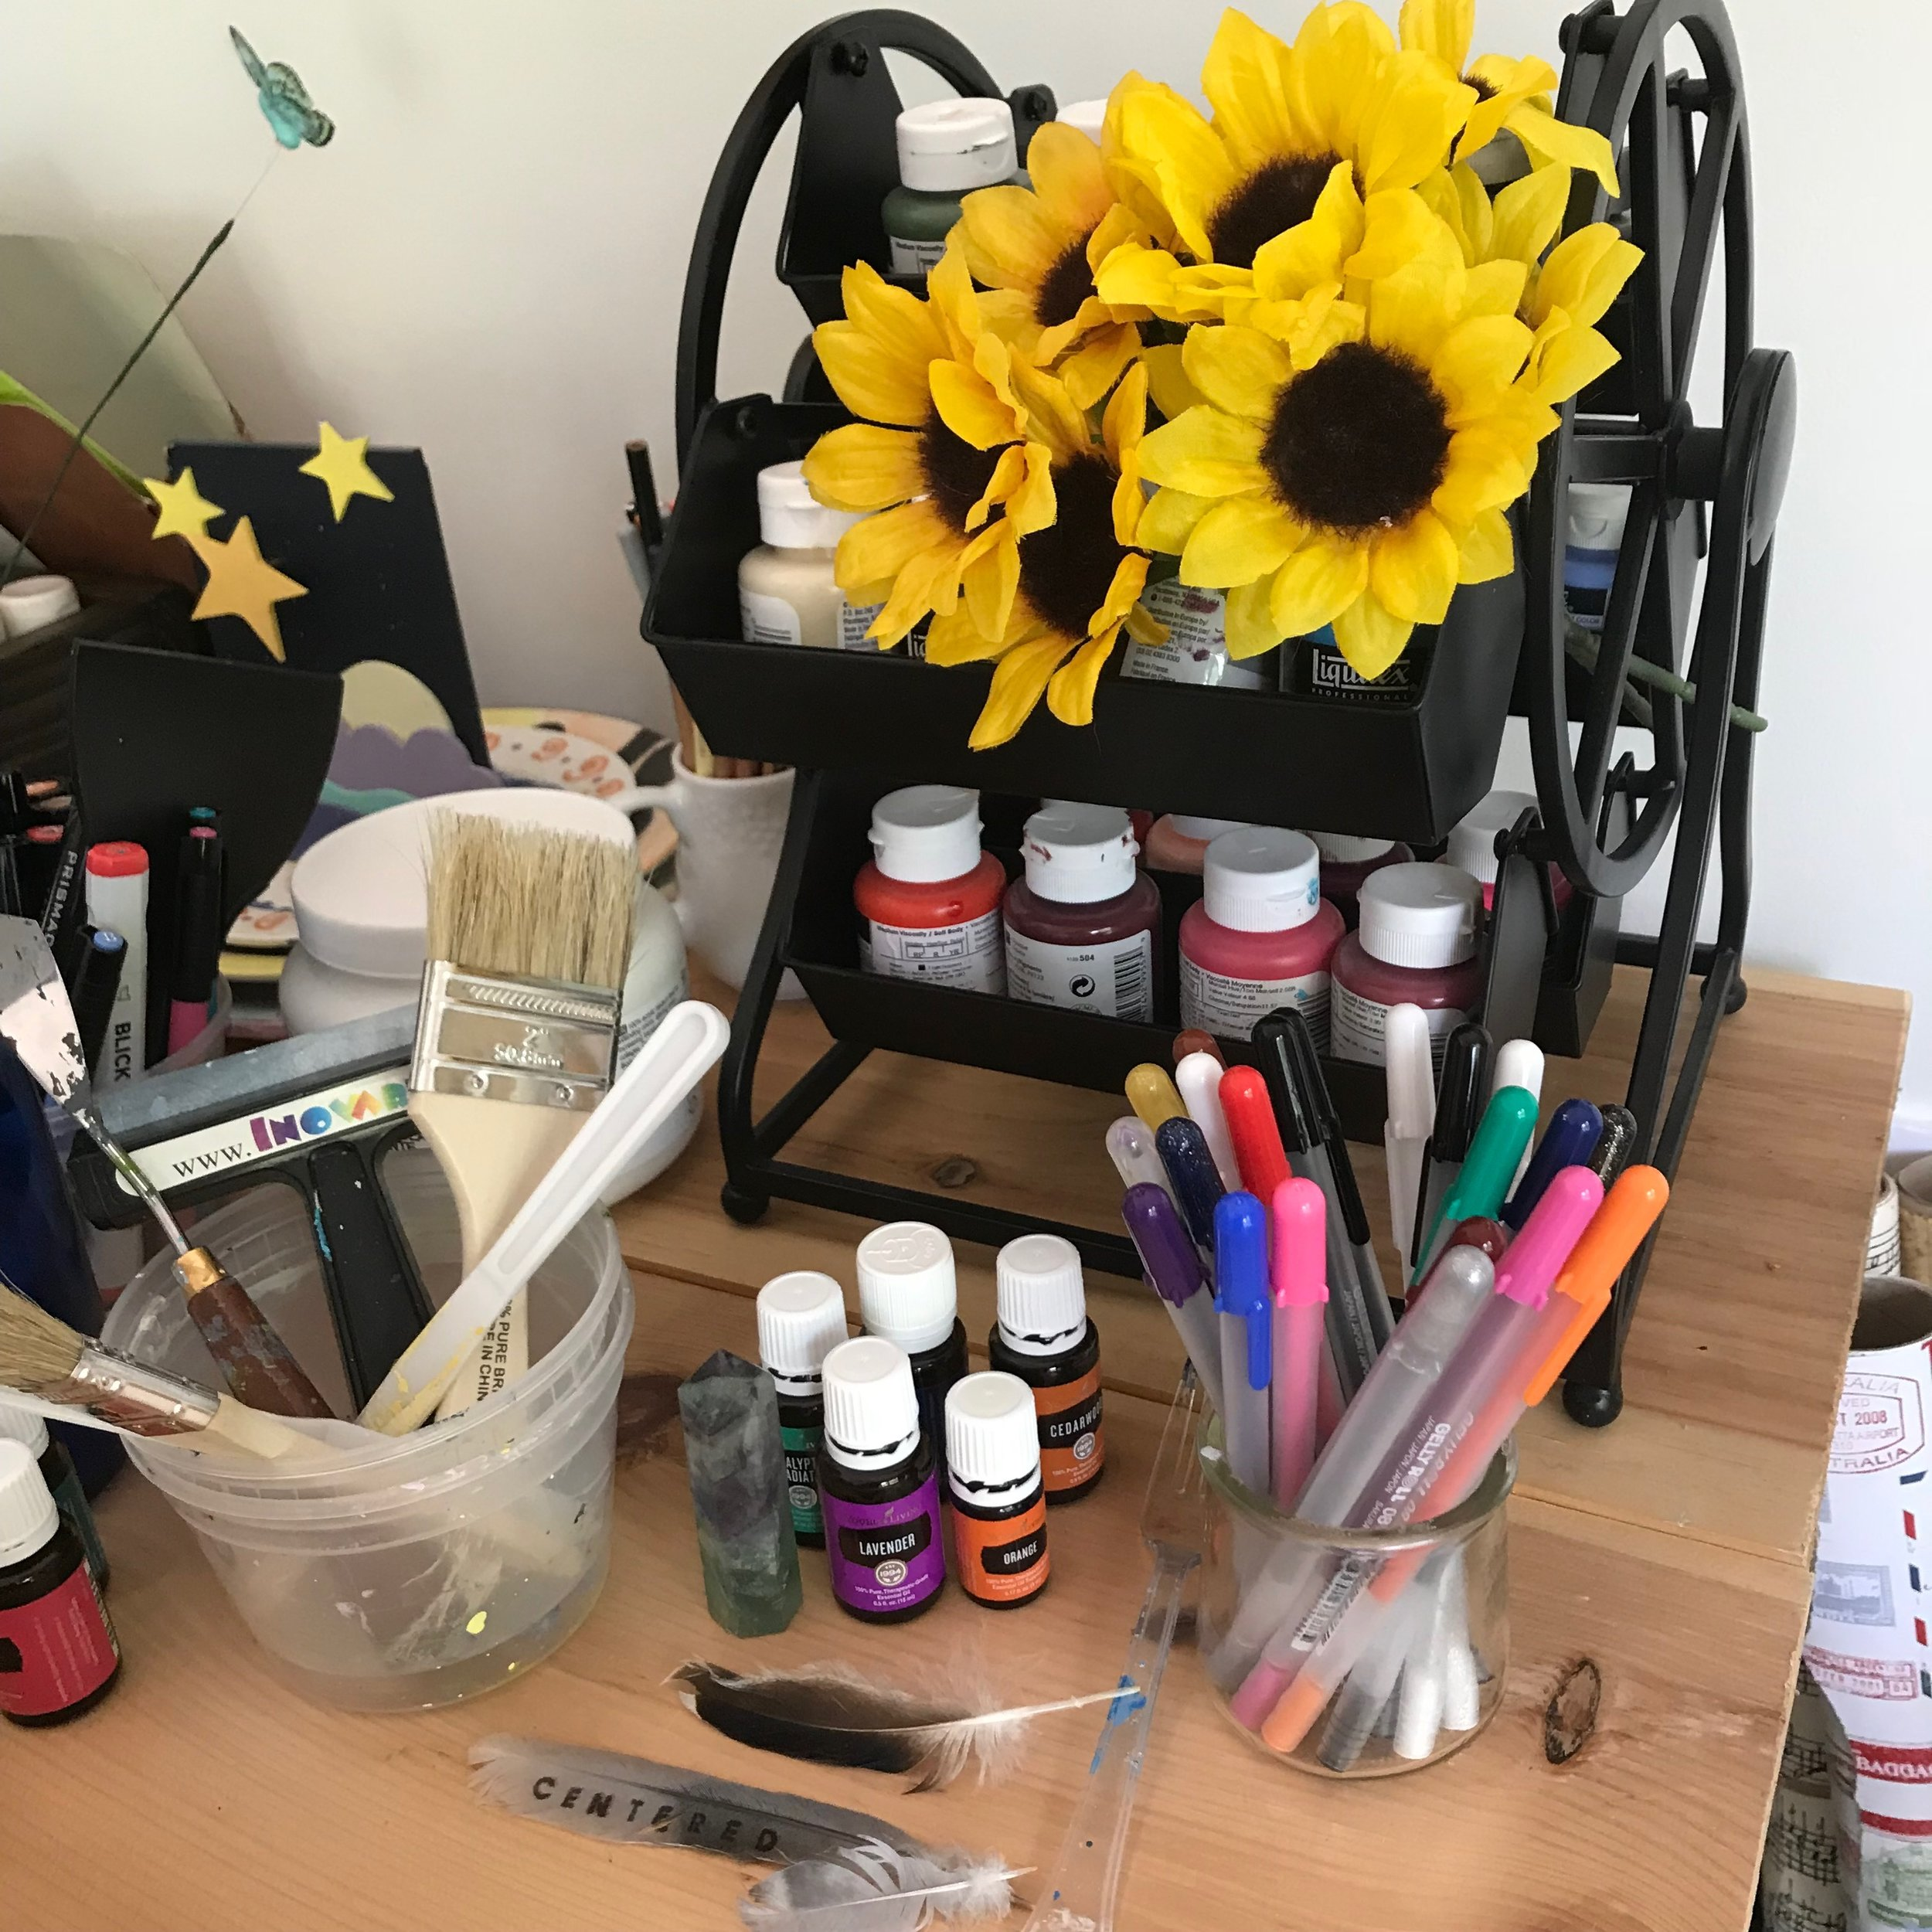 Feathers, oils, a crystal point, a paint carousel, a music box, some silk sunflowers, . . .